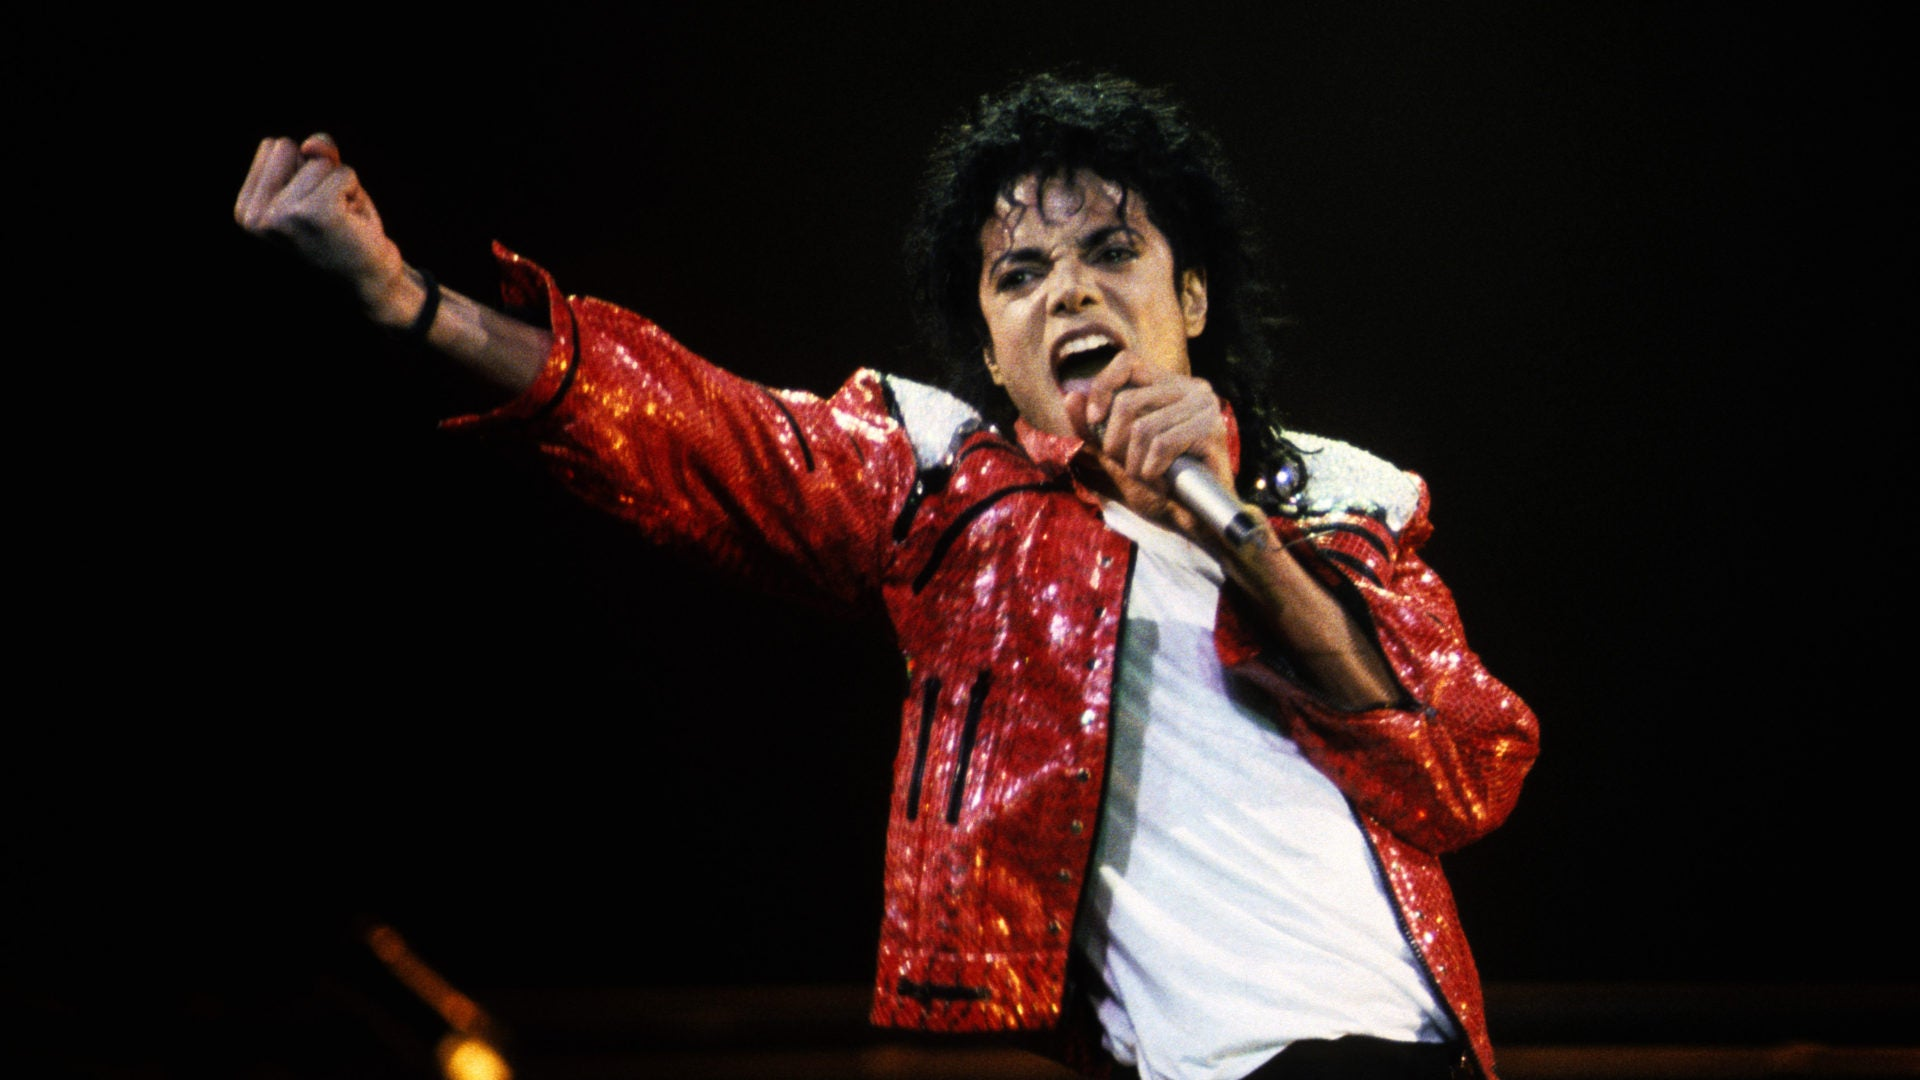 Michael Jackson Musical 'MJ' Gets Pushed Back to 2021